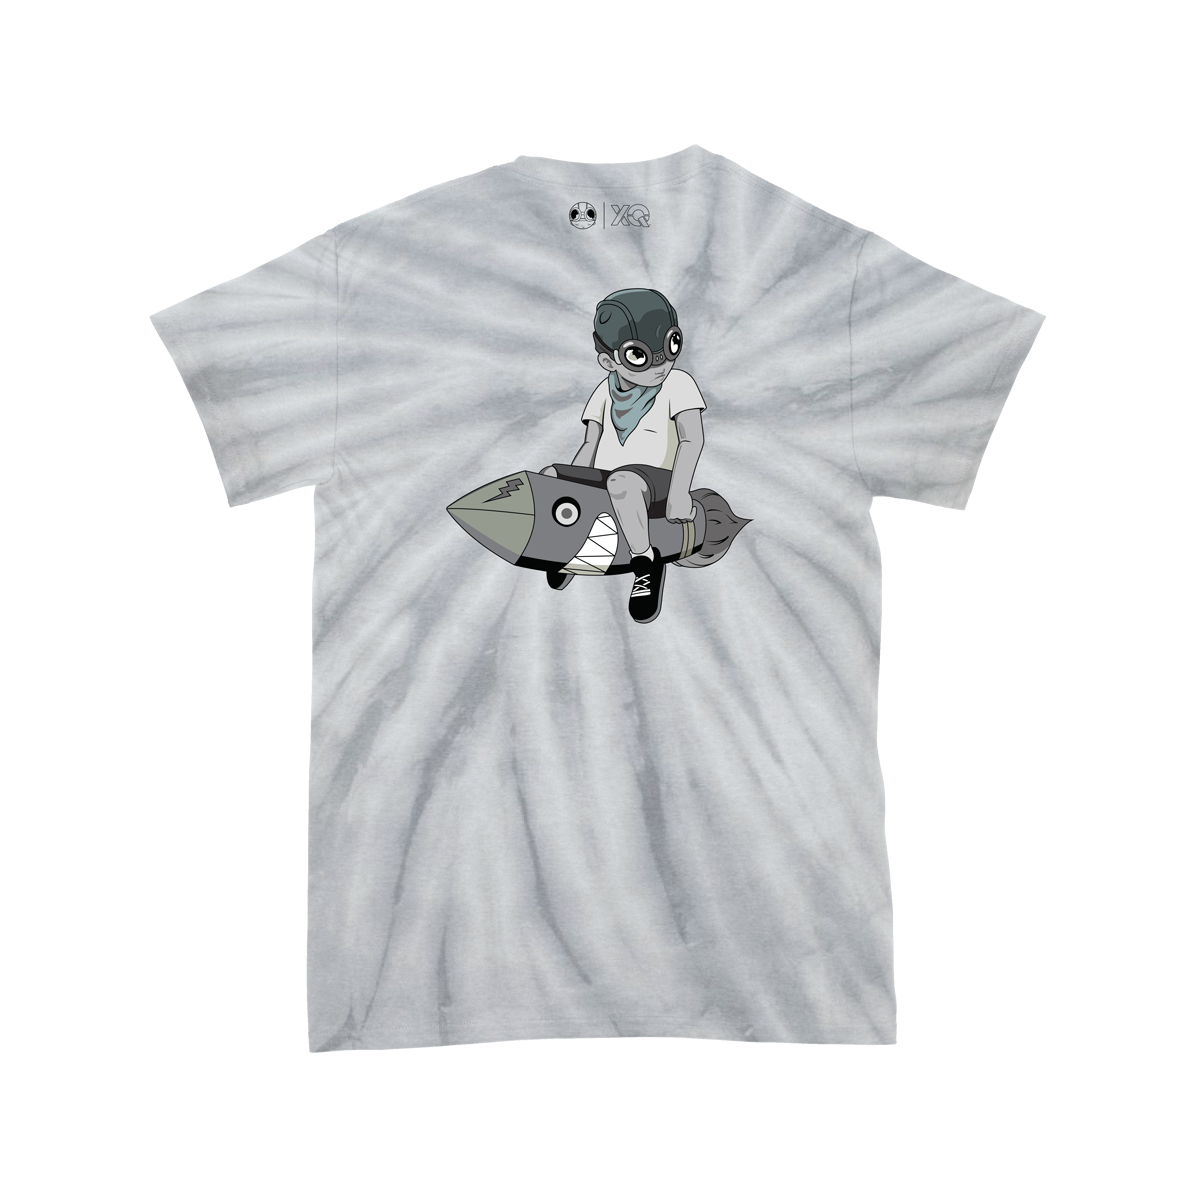 XQ SS FLYBOY MONOCHROMATIC CRYSTAL WASH T-SHIRT